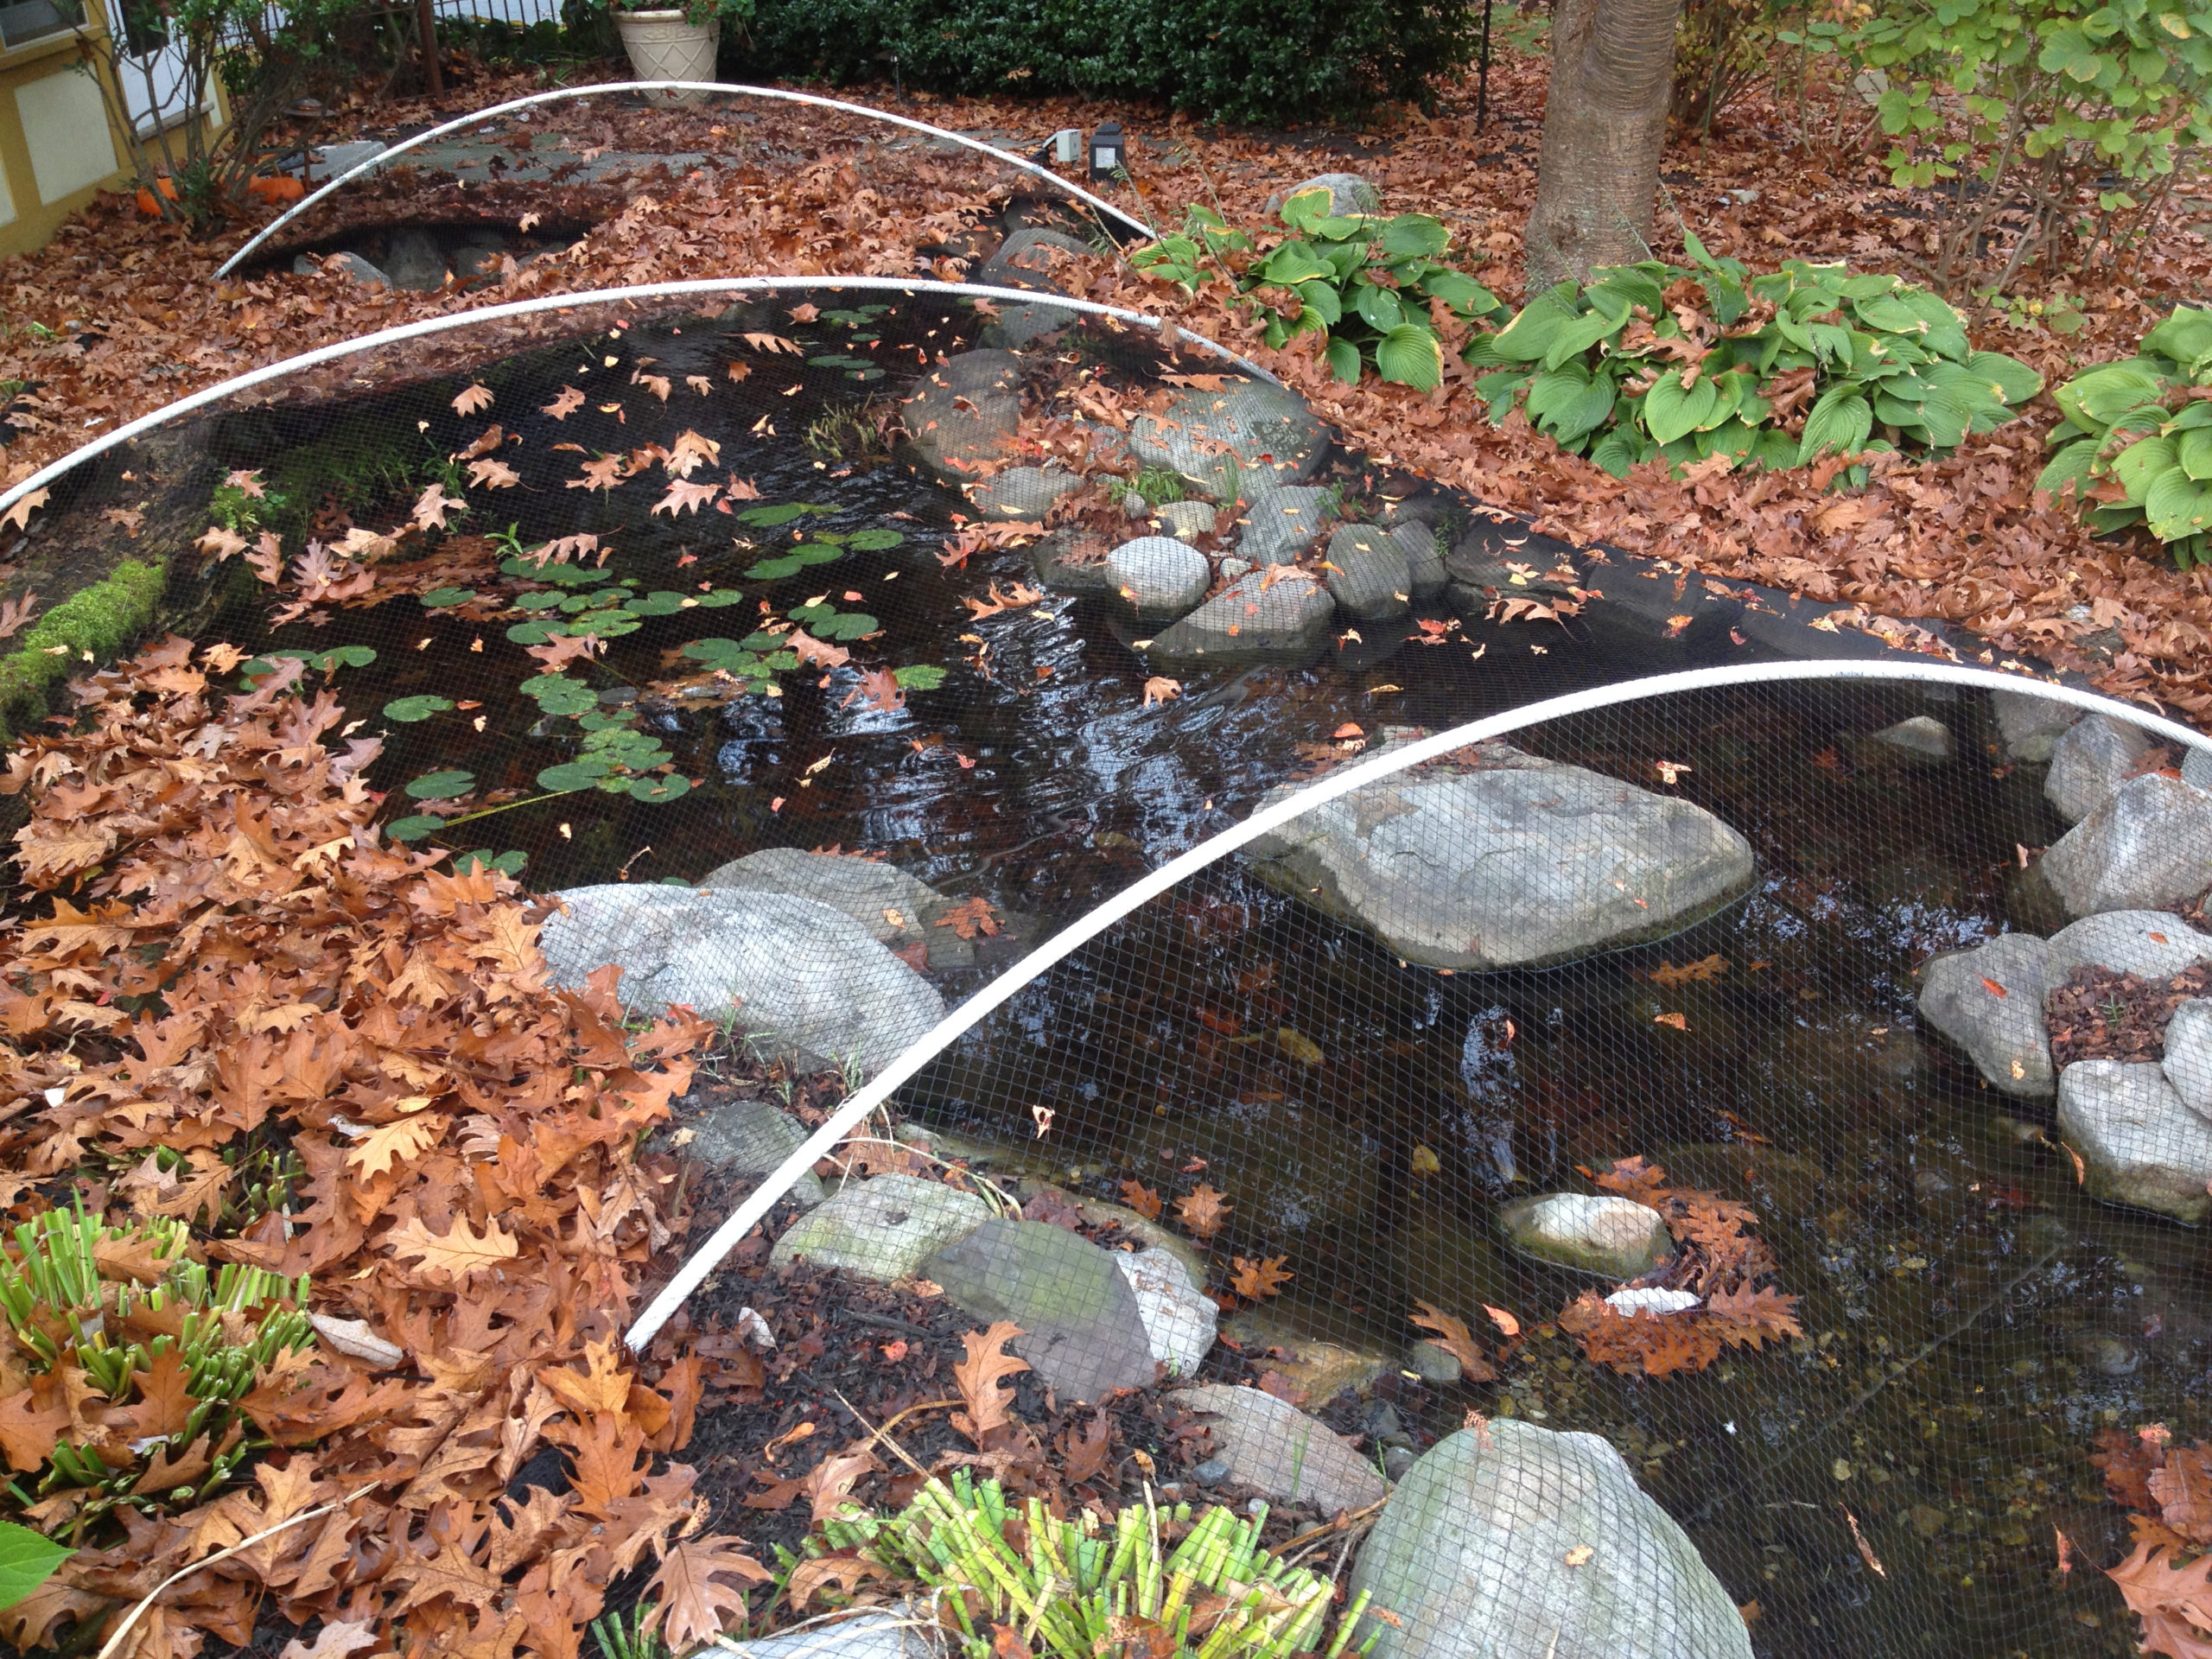 How to Care for Your Pond During Fall